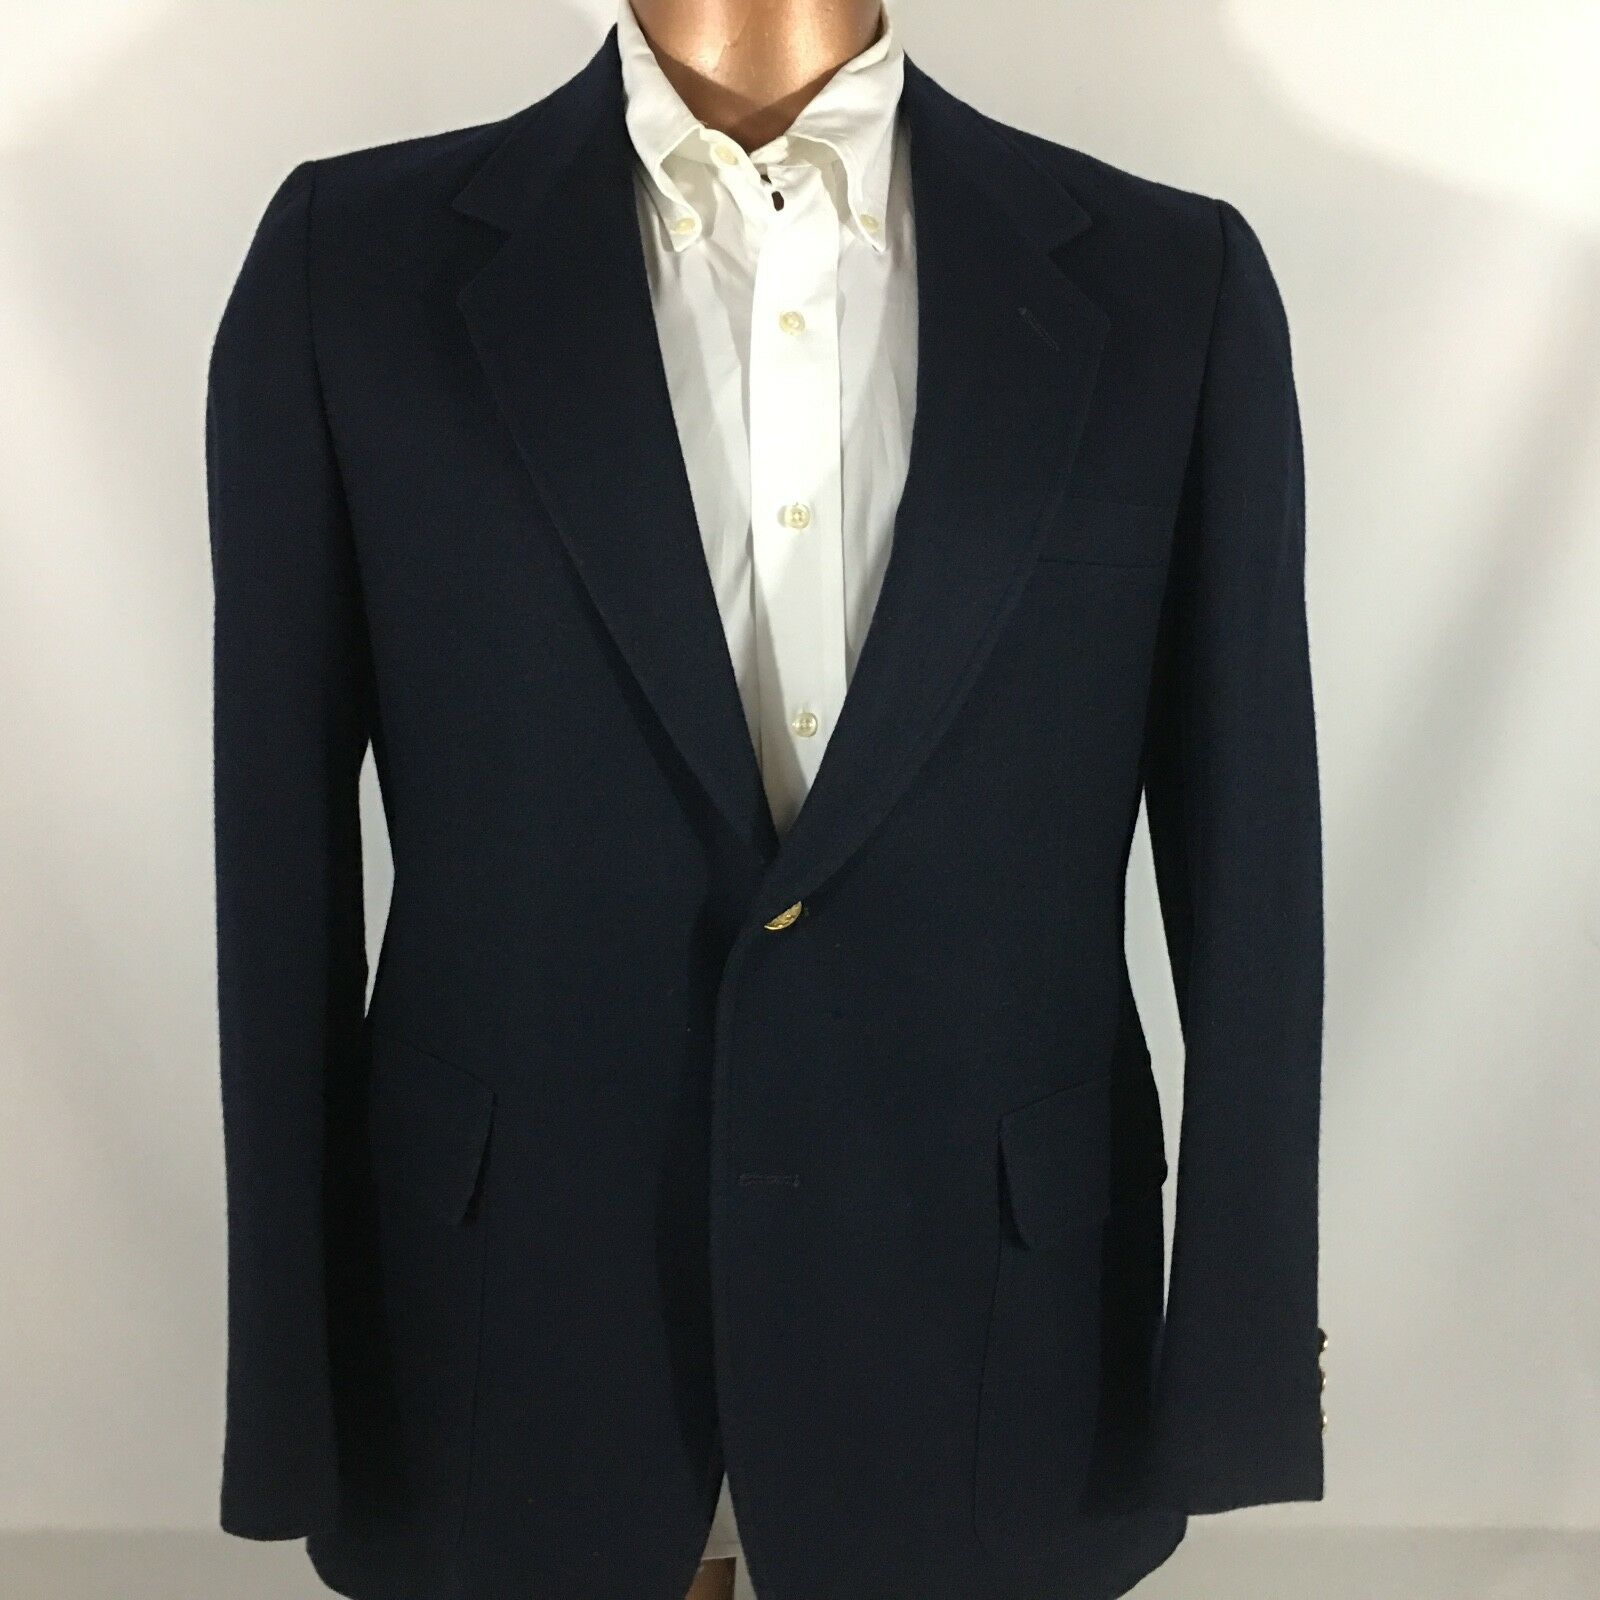 Pendleton 100% Wool Navy Single Vented Fully Lined Sport Coat Brass Button 40R